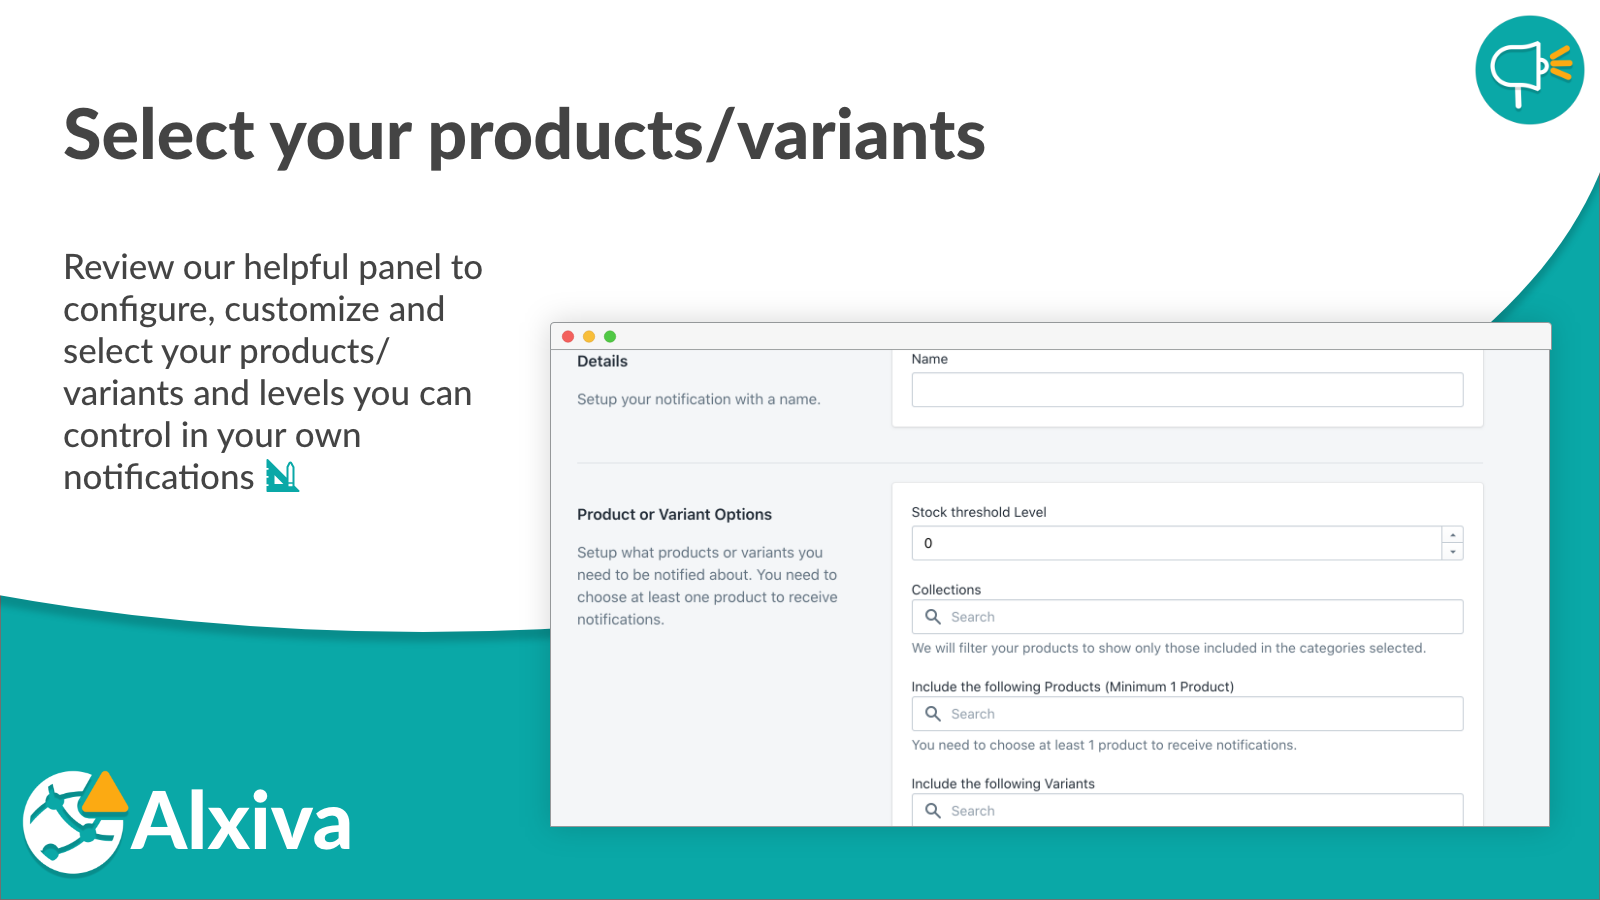 Select your products/variants